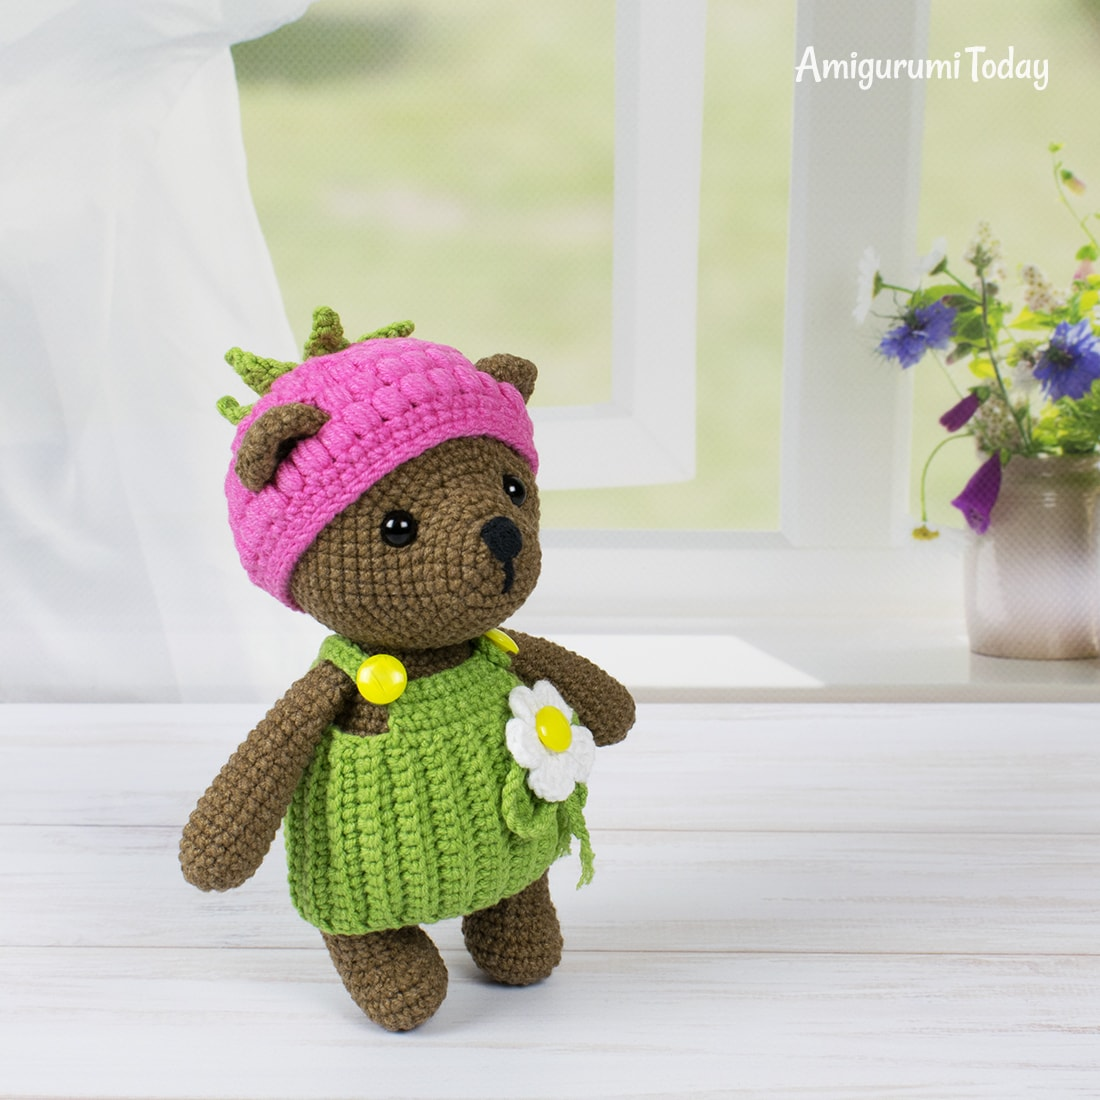 Raspberry Bear - Free crochet pattern by Amigurumi Today